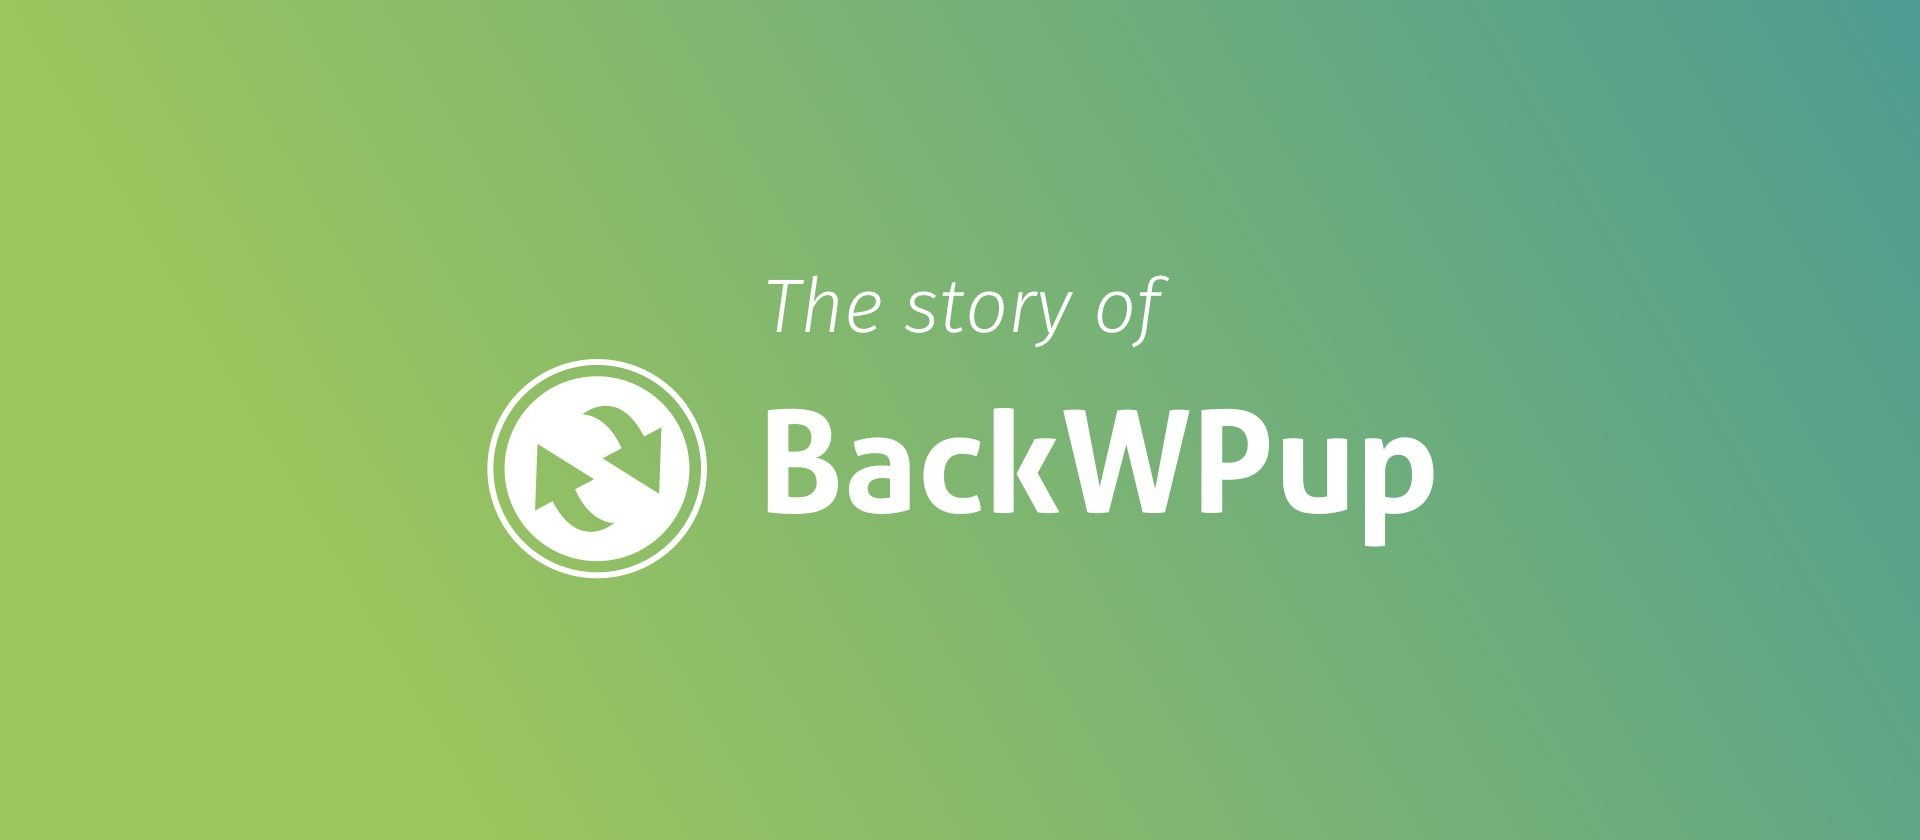 Header: The story of BackWPup